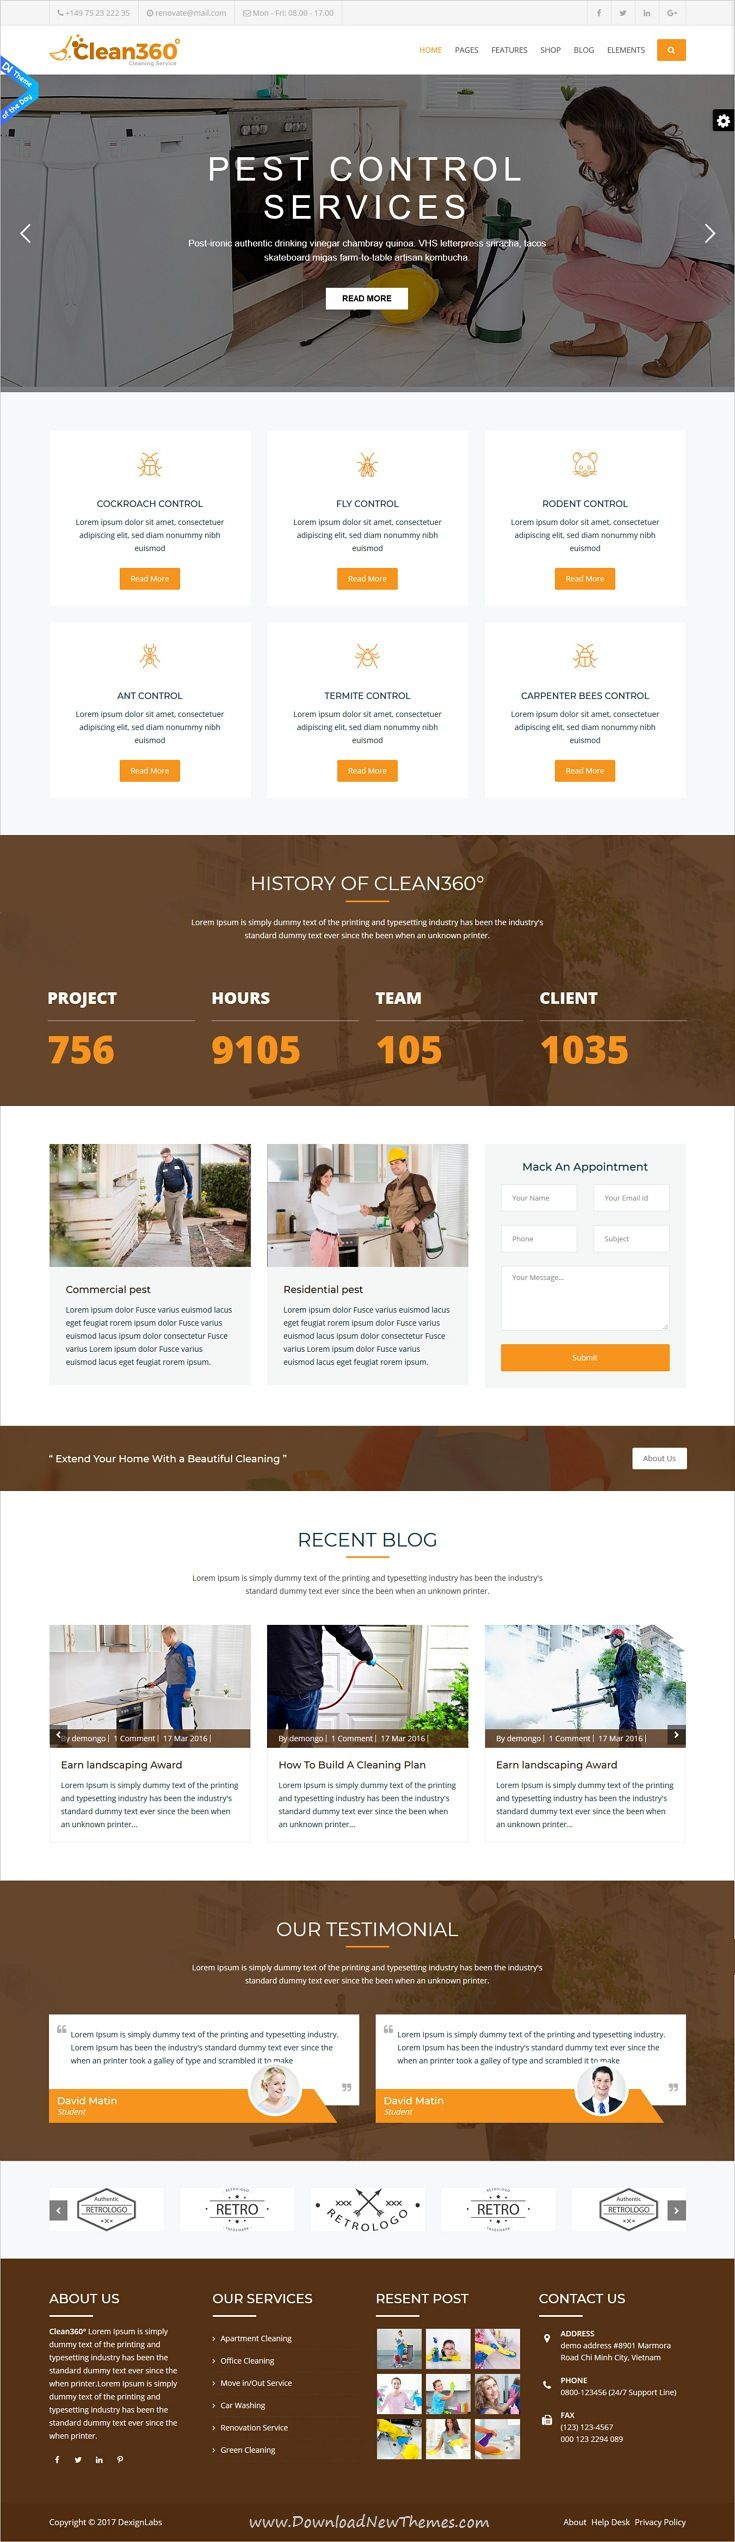 clean360 is clean and modern design 2in1 responsive bootstrap html template for cleaning